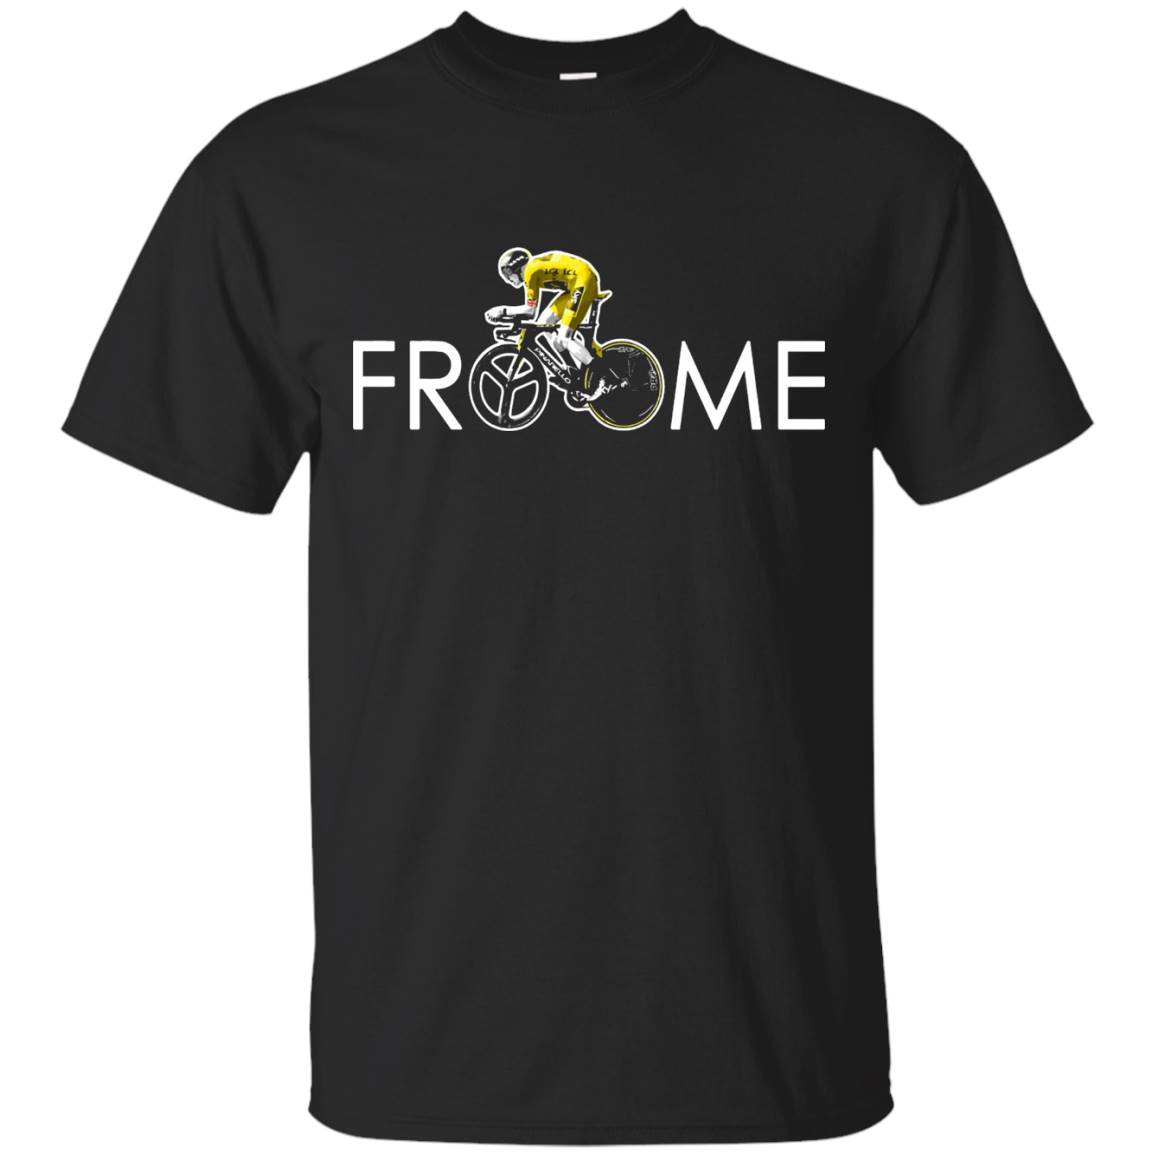 Chris Froome Tour de France 100th Winner 2013 – T-Shirt